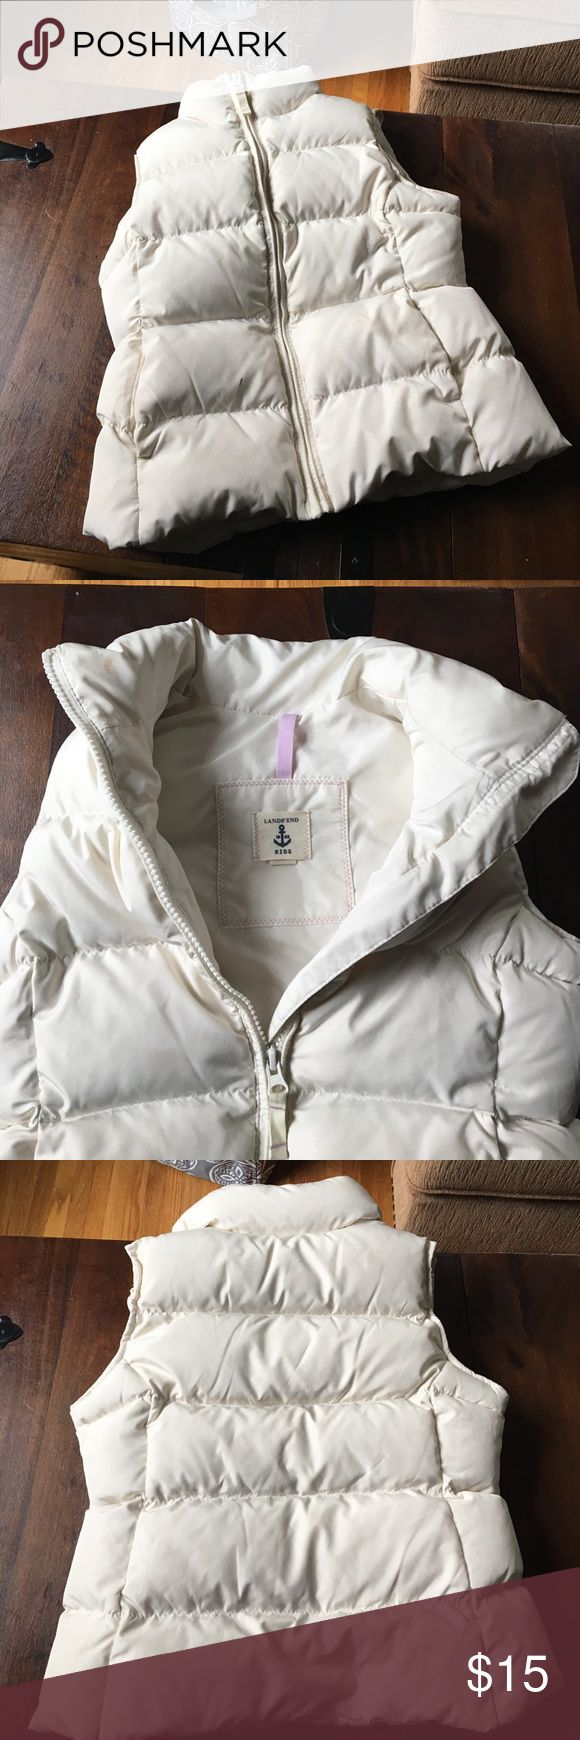 Lands end girls puffer vest Size med 5-6 puffer vest cream lands end Jackets & Coats Vests